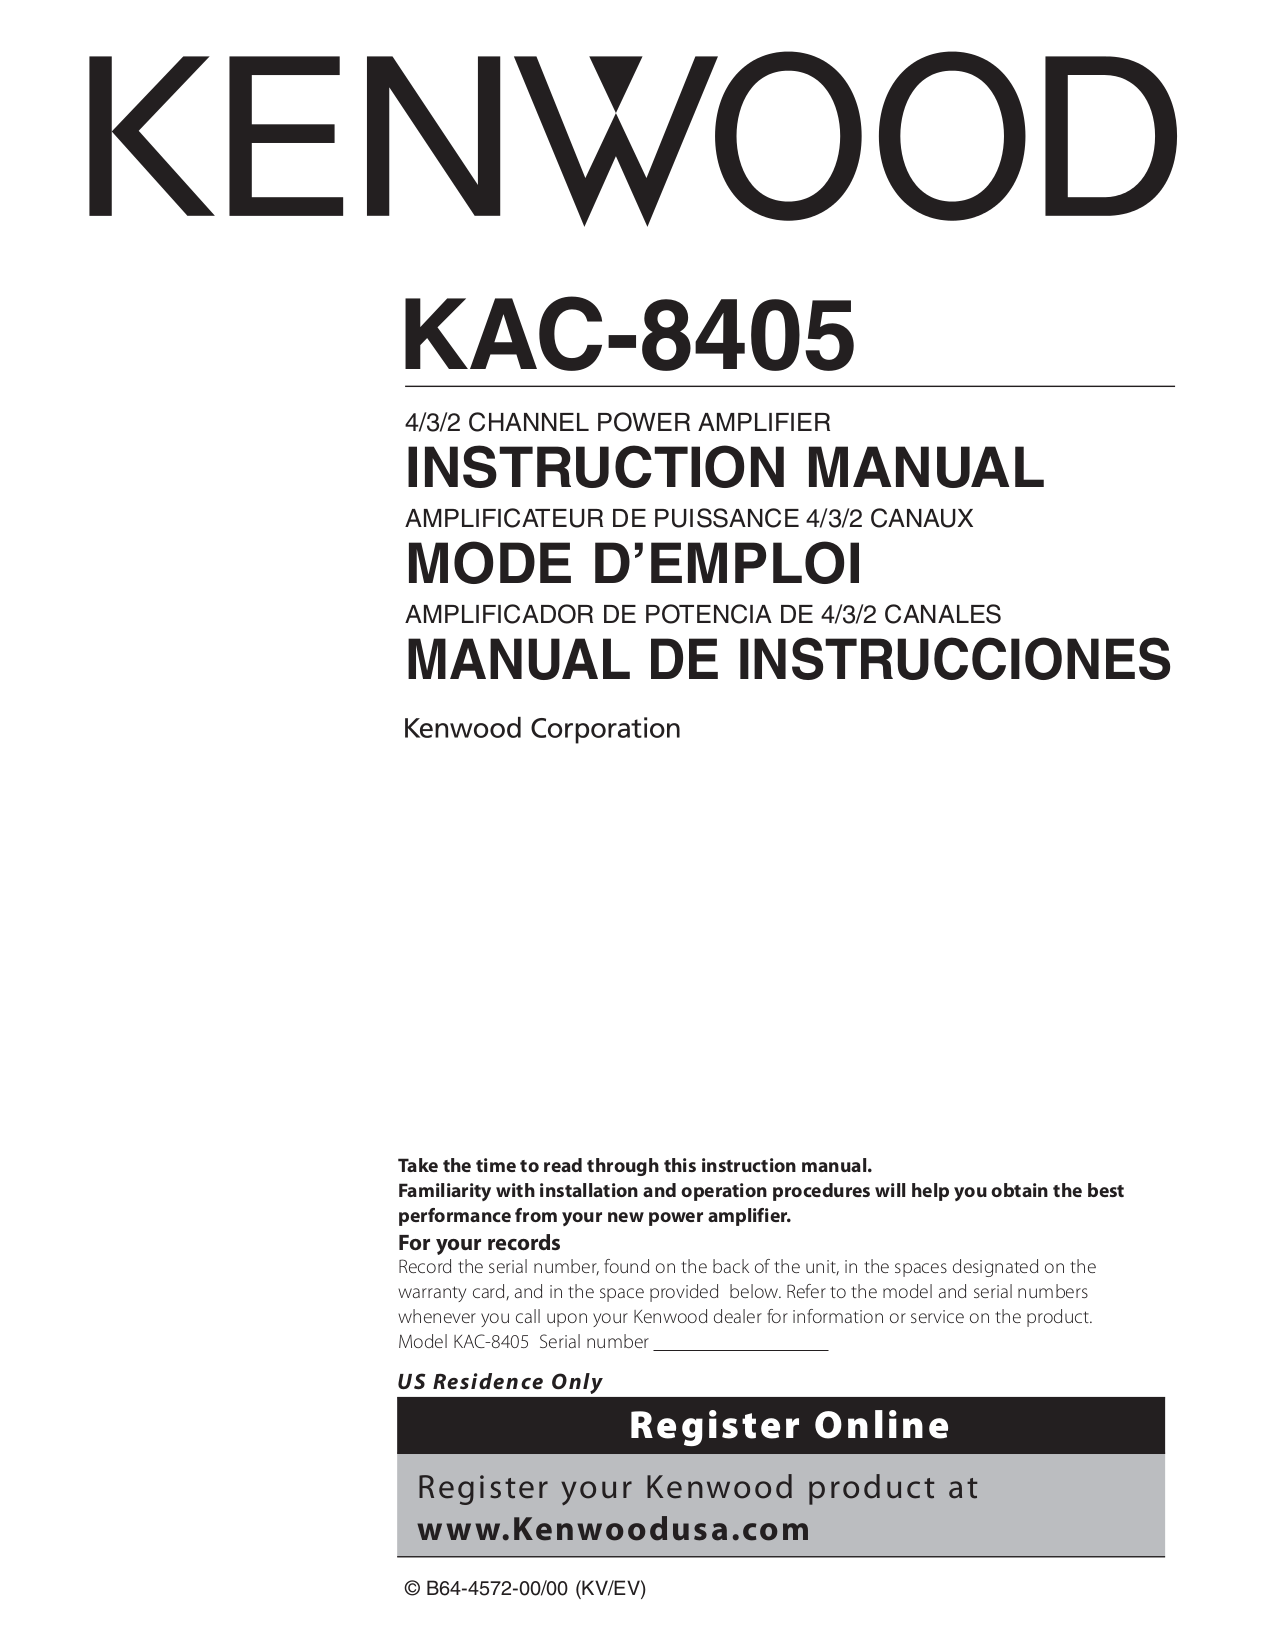 113KAC8405.PDF 0 download free pdf for kenwood kac 8405 car amplifier manual